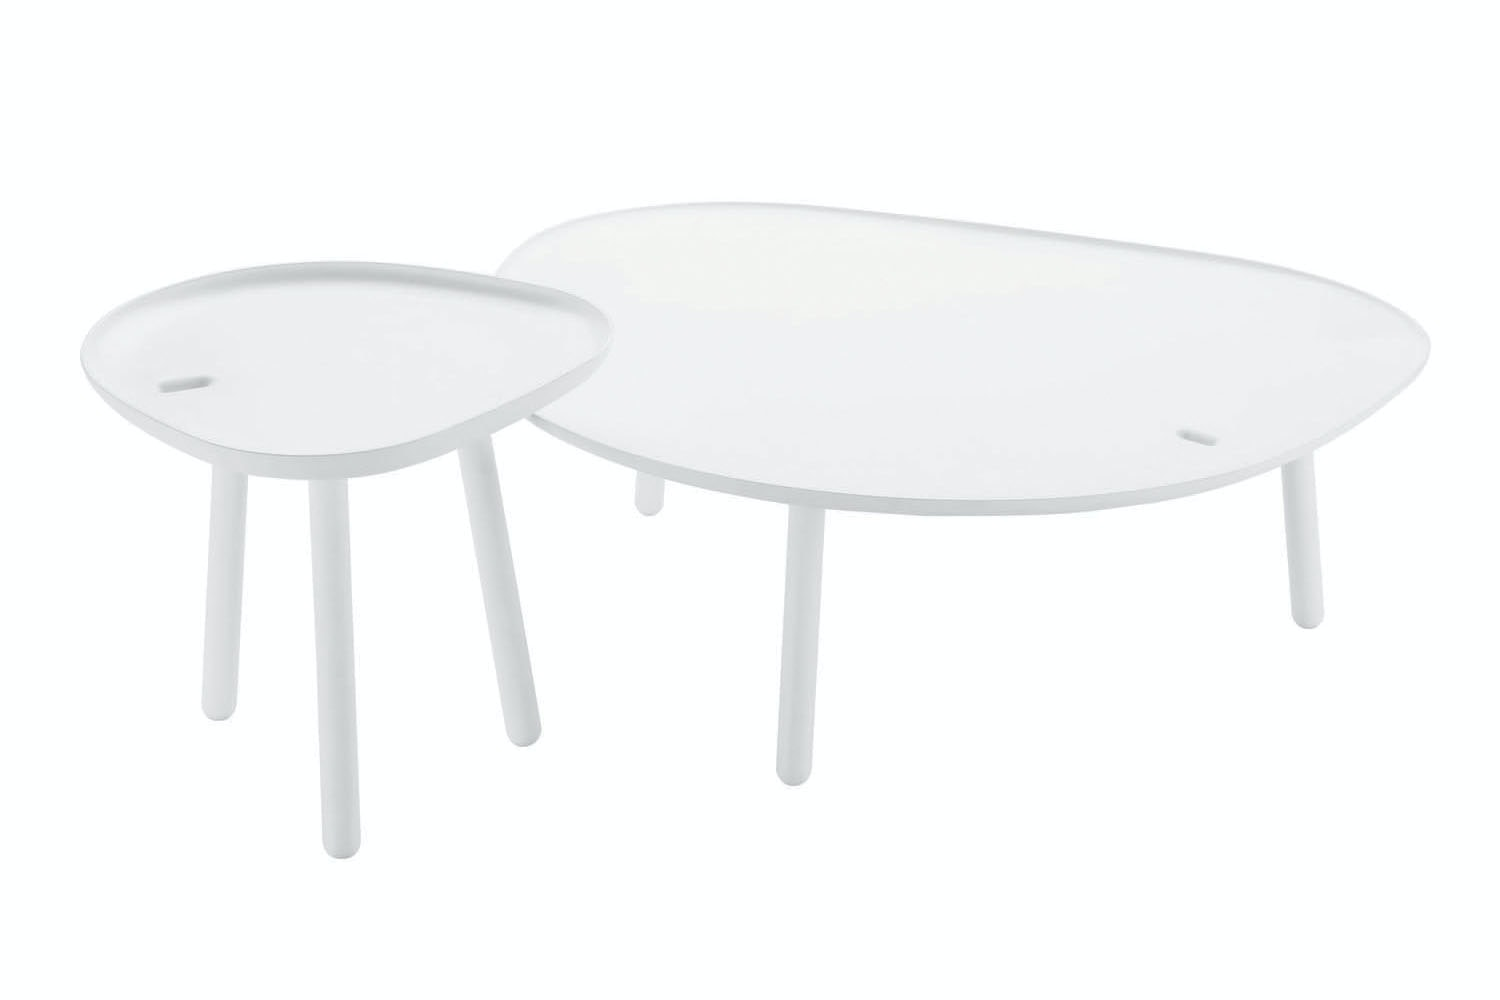 Ninfea Coffee Table by Ludovica & Roberto Palomba for Zanotta